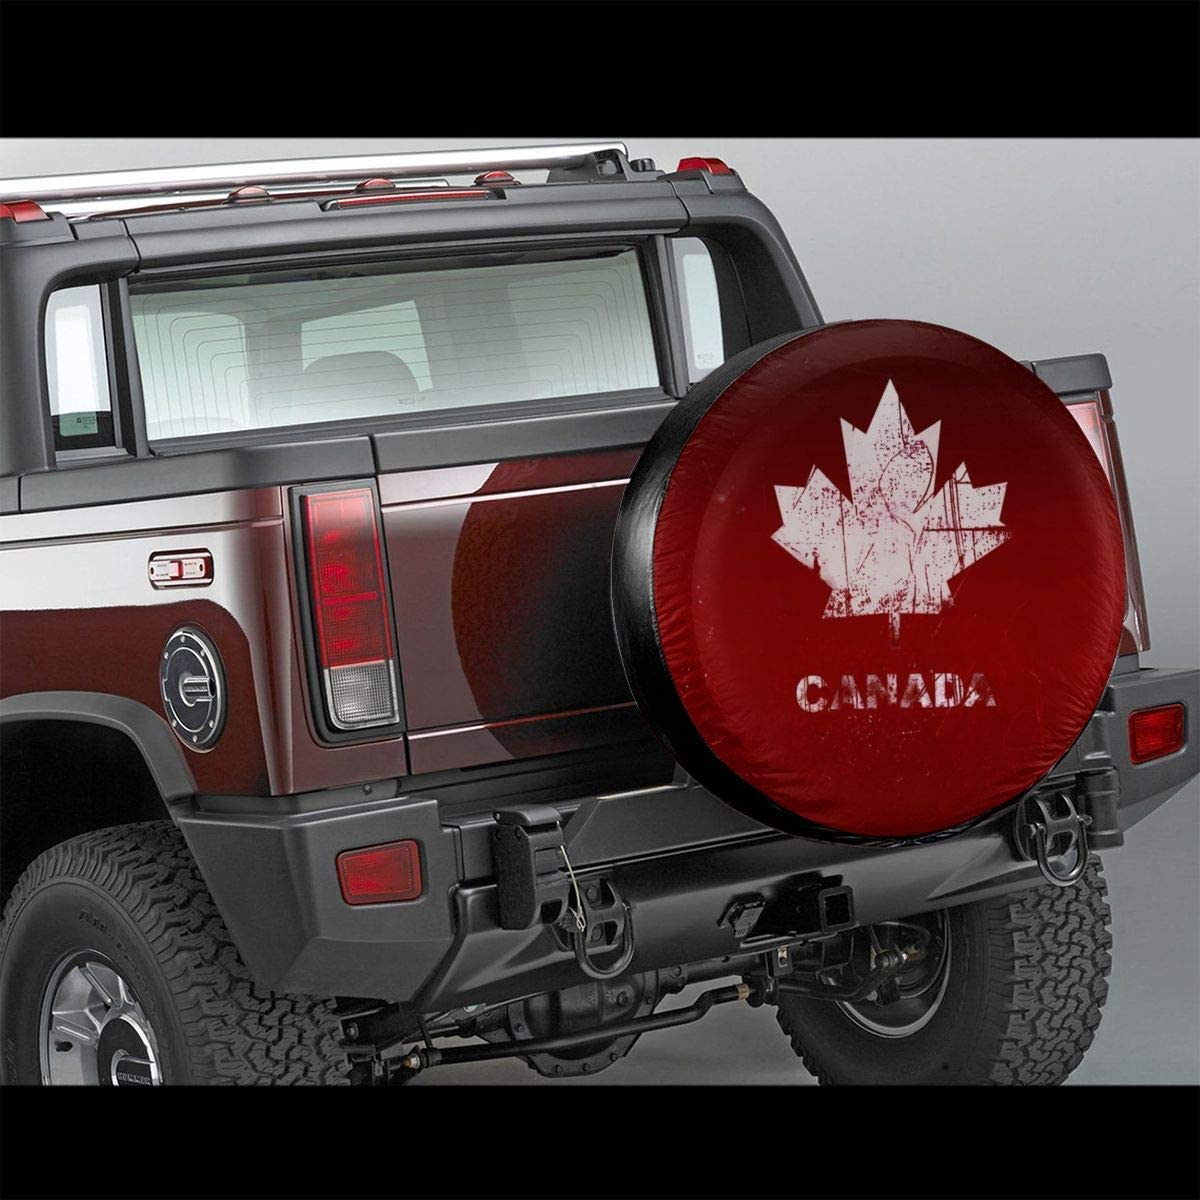 Vbnbvn Reserveradabdeckung Great Canada Flag Polyester Universal Dust-Proof Sunscreen Wheel Covers for Jeep Trailer RV SUV Truck Camper Travel Trailer Accessories 14,15,16,17 Inch